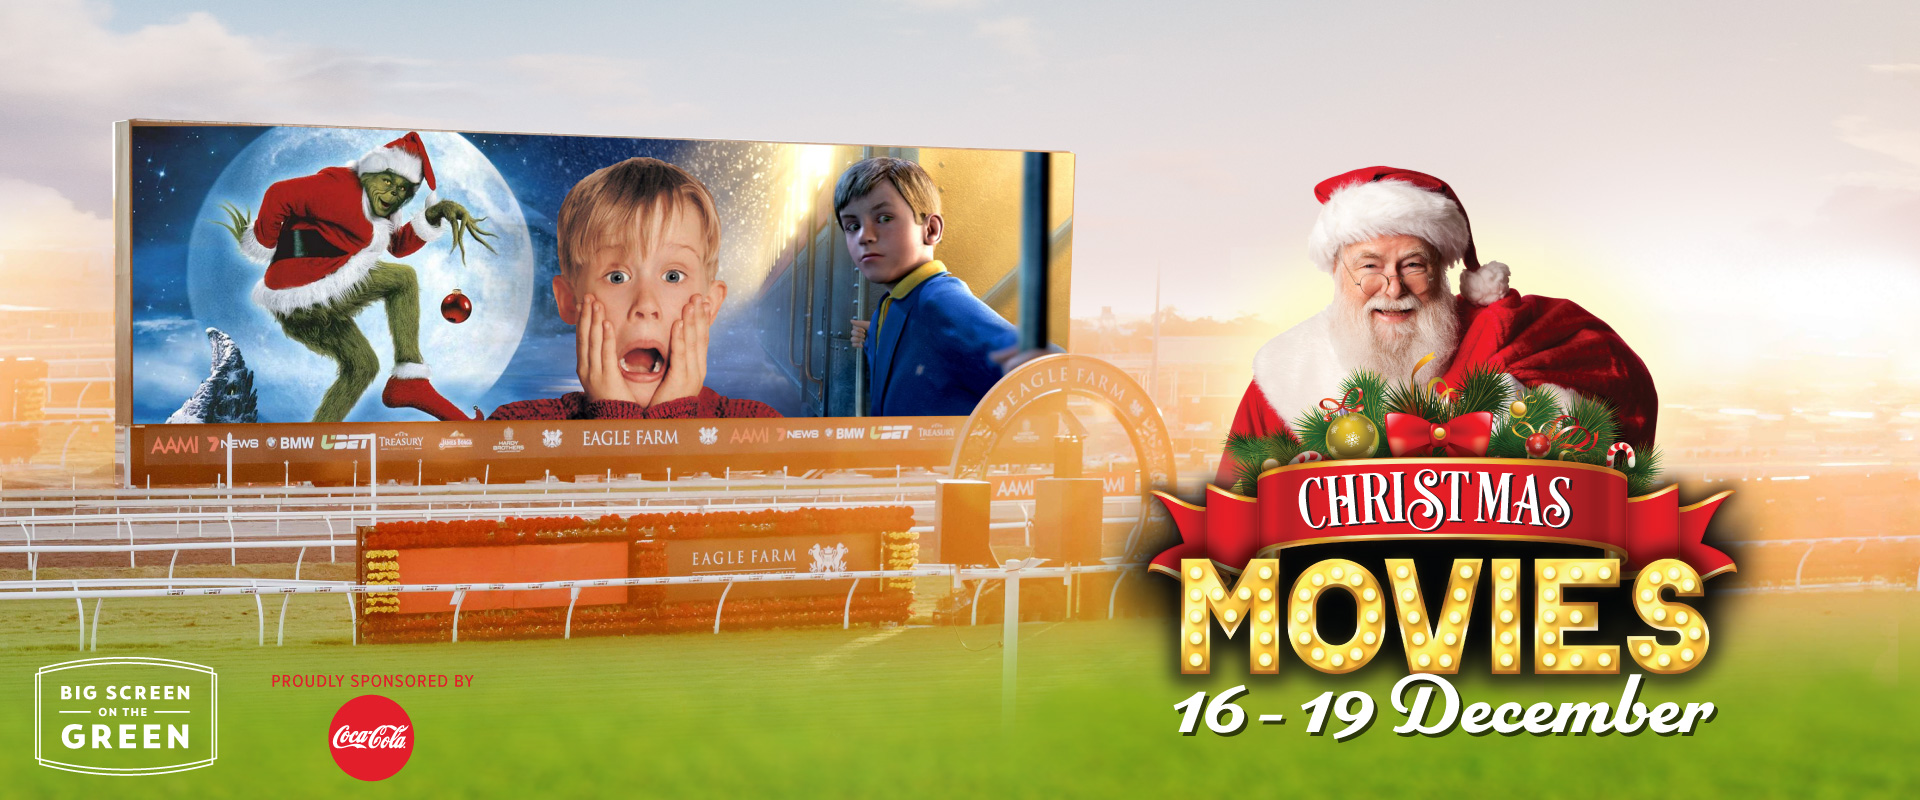 Christmas Movies on the Big Screen on the Green